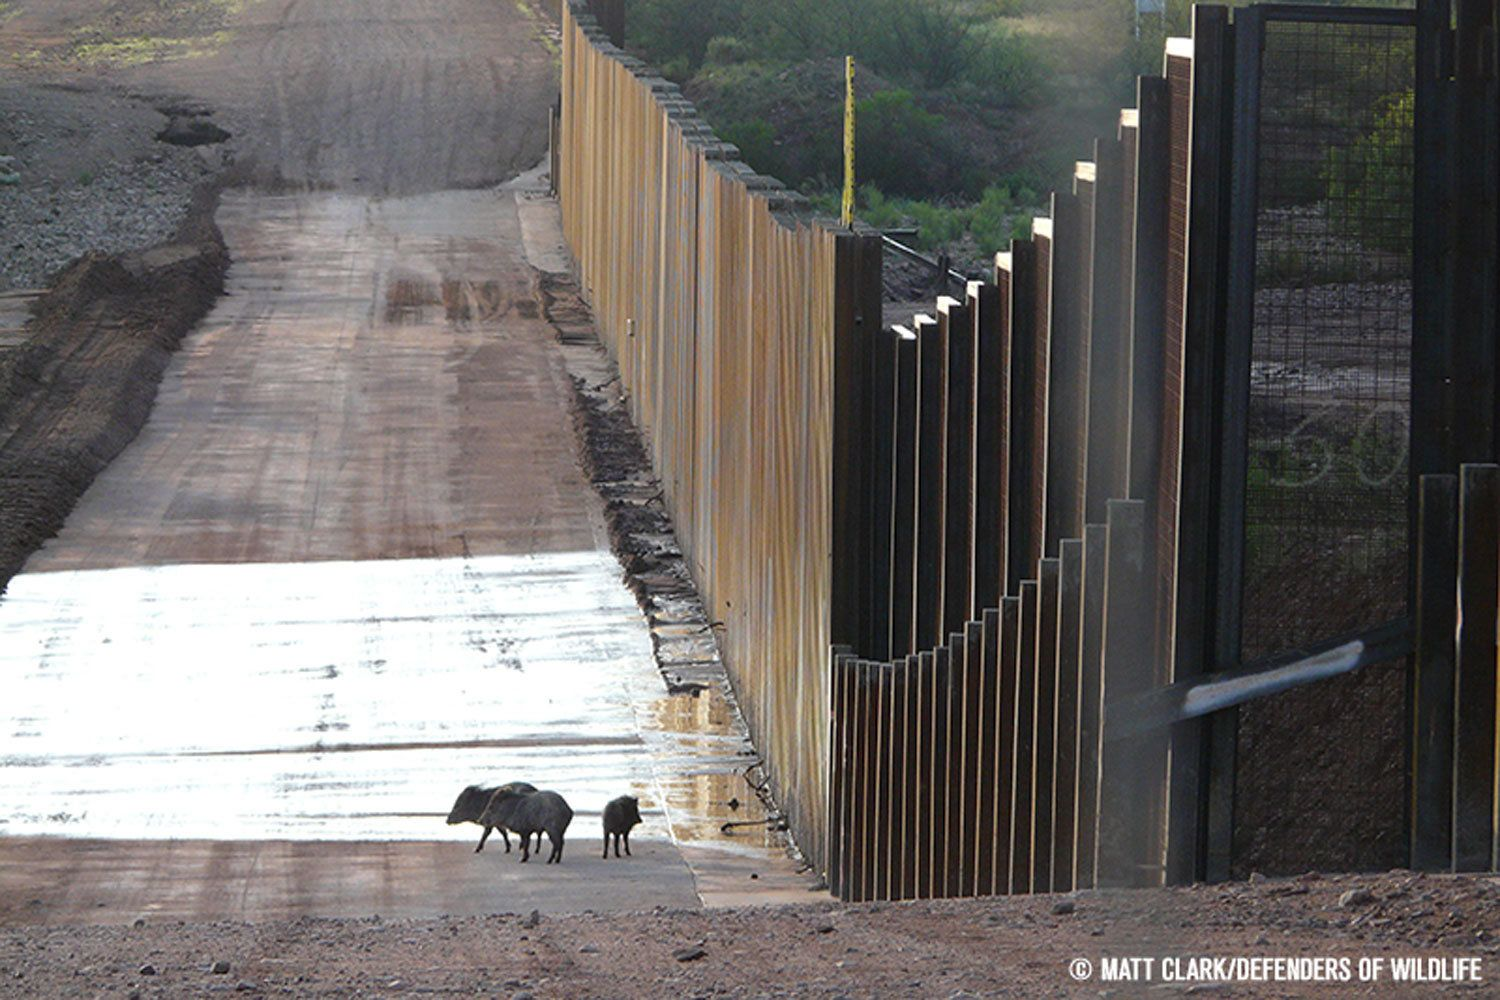 A family of javelinas, a type of wild hoofed animal similar to pigs, near a section ofwall on the U.S.-Mexico border ne